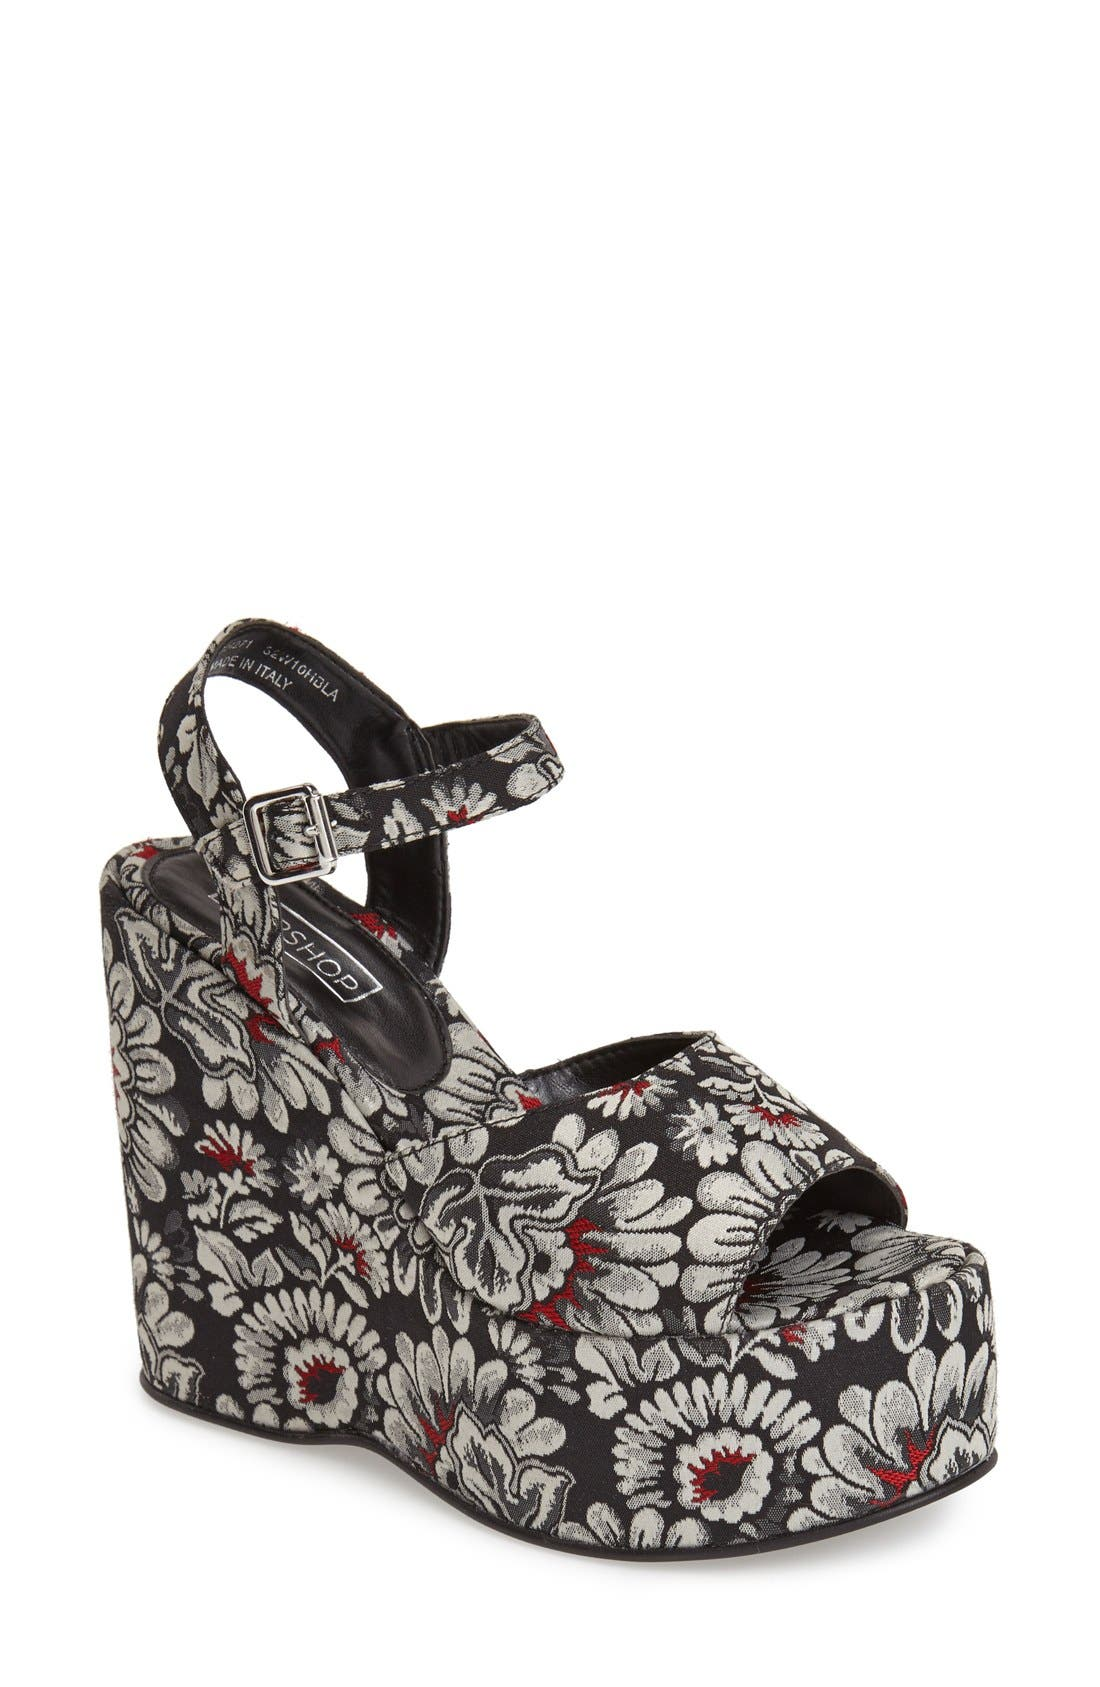 Alternate Image 1 Selected - Topshop 'Wallflower' Wedge Sandal (Women)